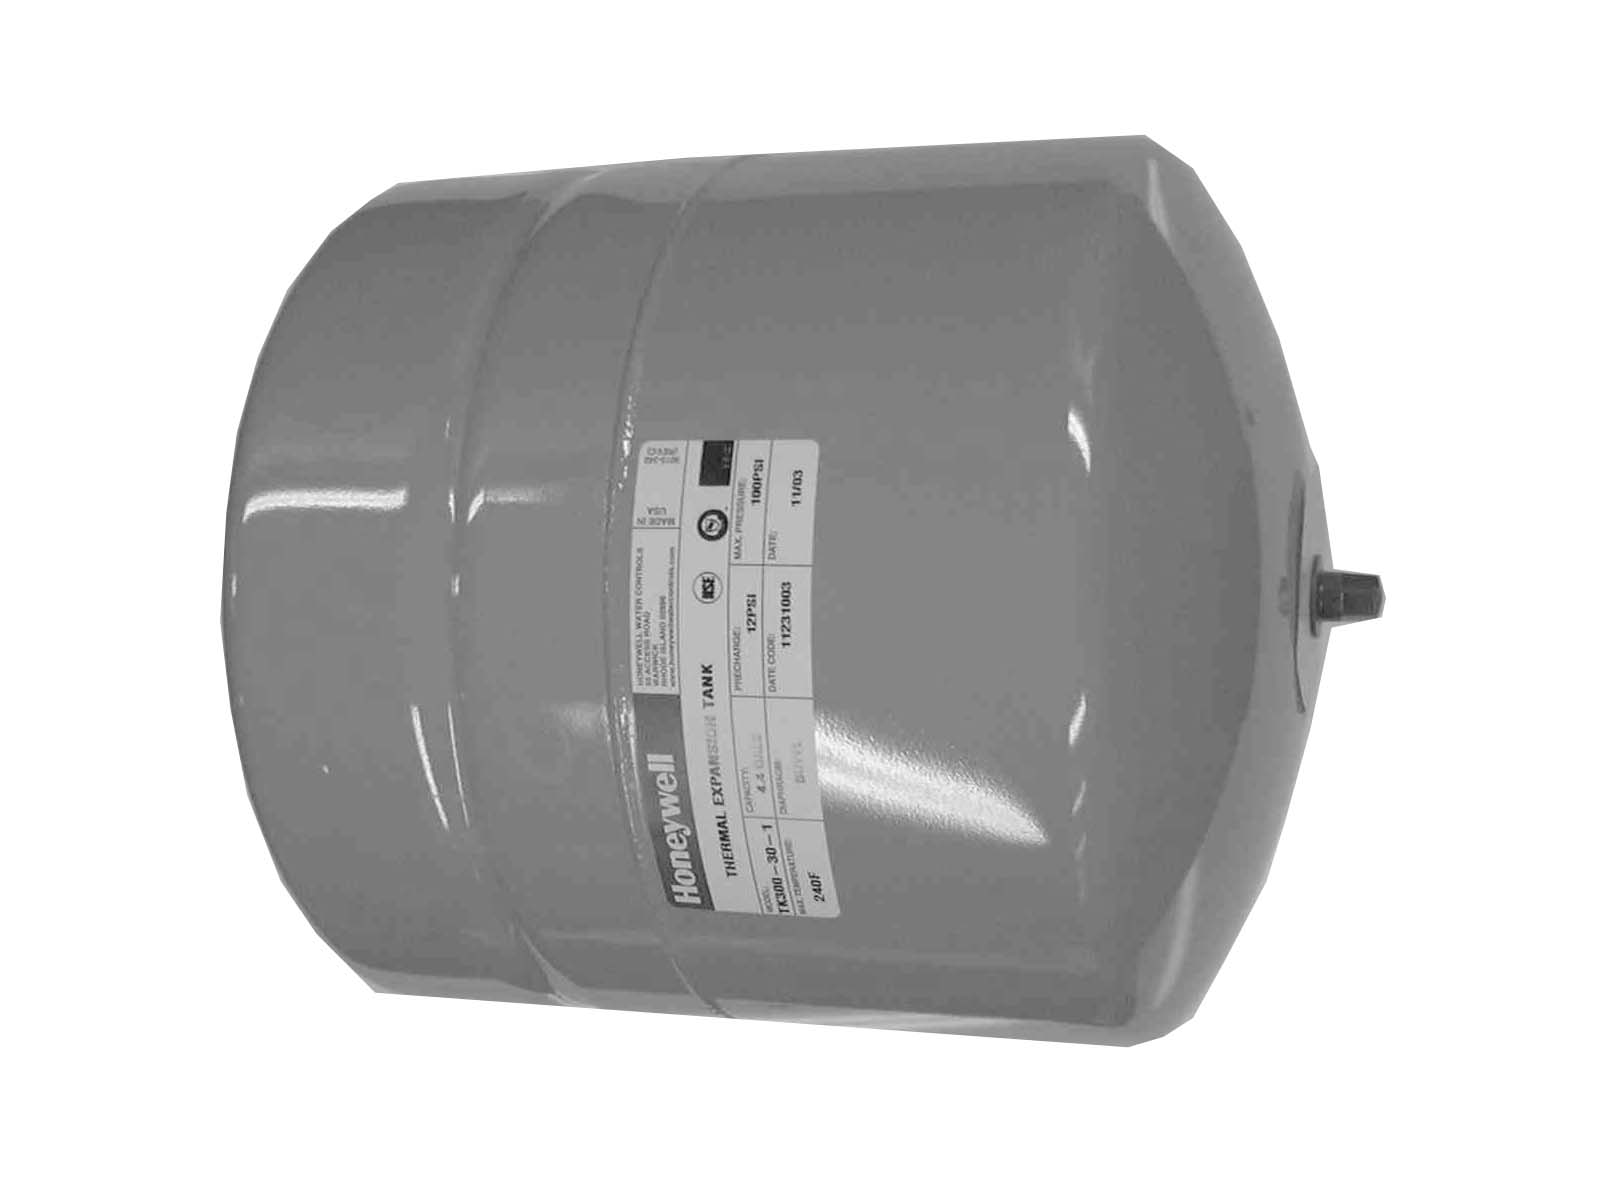 HONEYWELL SPARCO-TROL EXPANSION TANK 4.4 GALLON